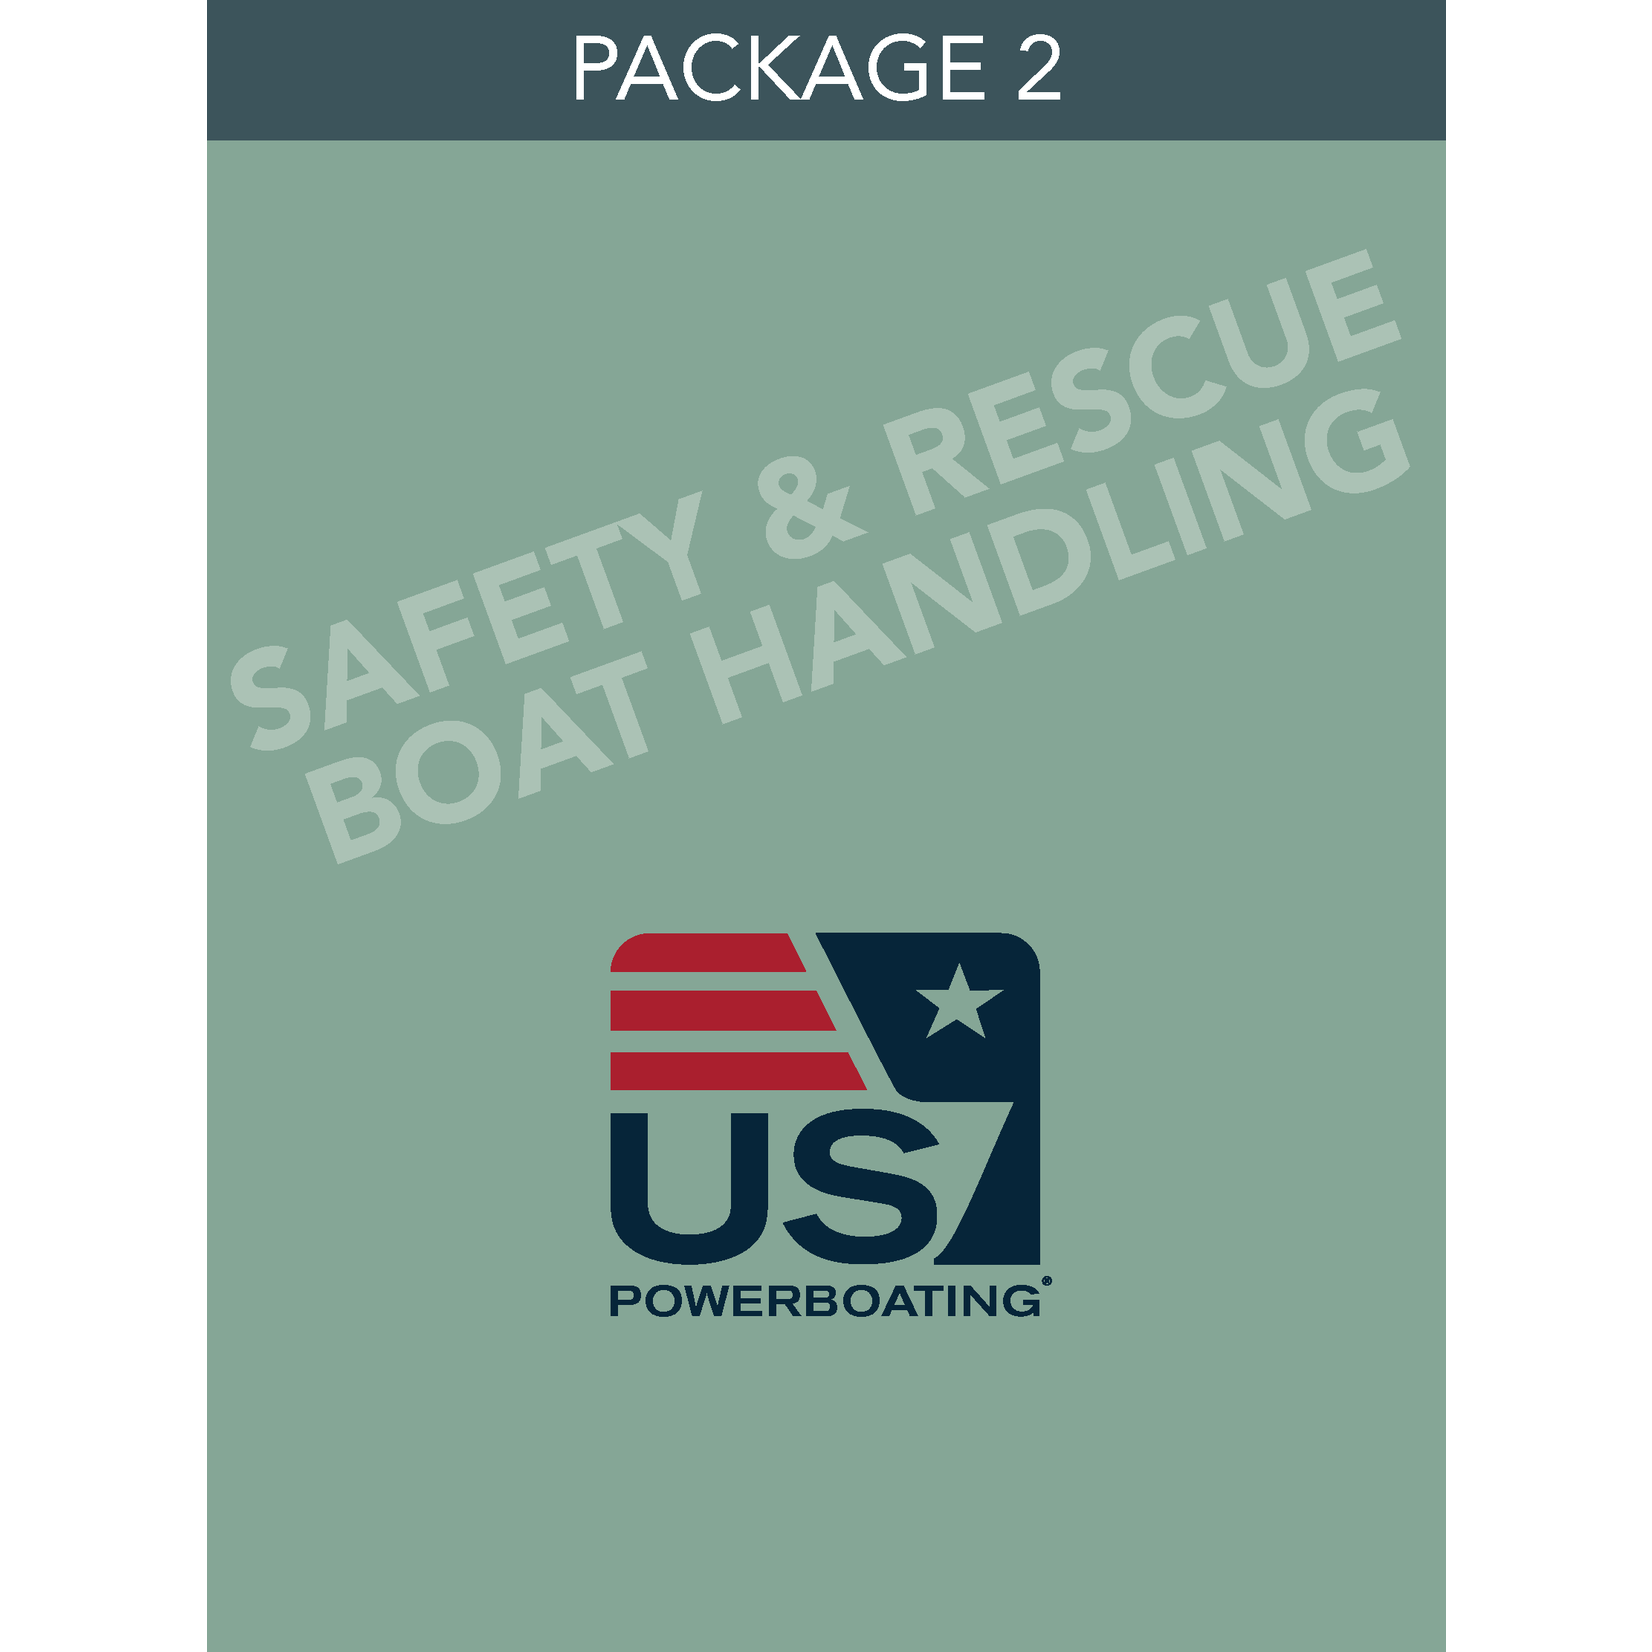 Safety & Rescue Boat Handling- Package 2